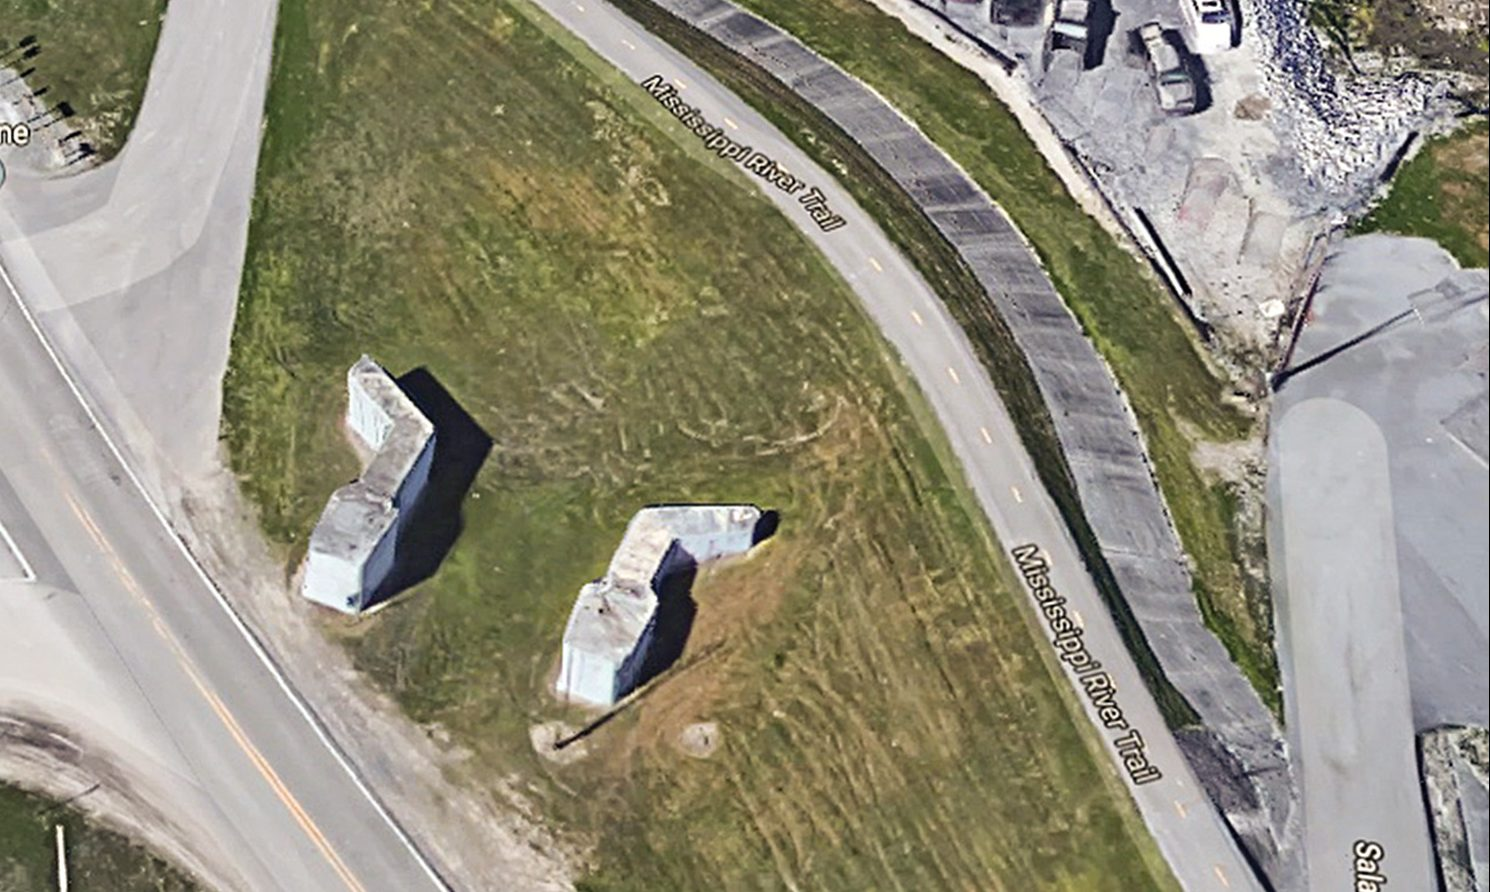 Satellite view of the remains of Westwego Lock near the offices of Progressive Barge Line in Westwego, La. (Google Maps image)